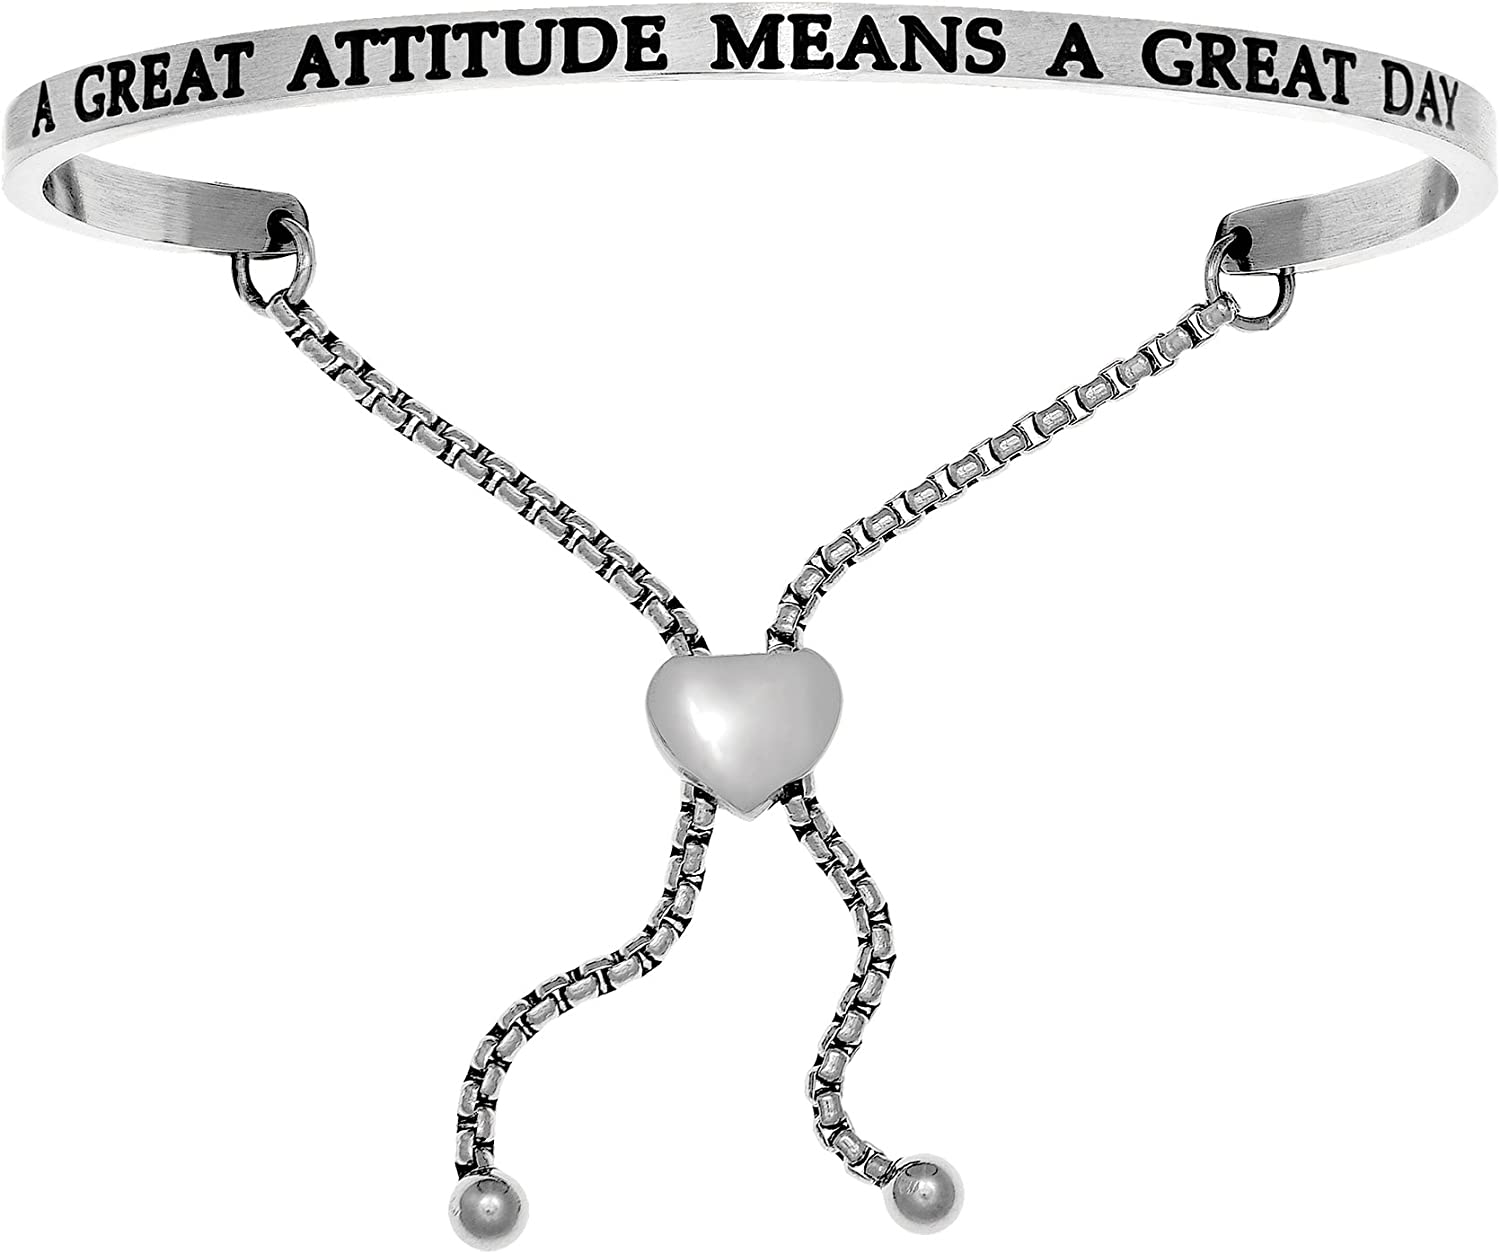 Amazon Com Intuitions Stainless Steel A Great Attitude Means A Great Day Diamond Accent Adjustable Bracelet Jewelry